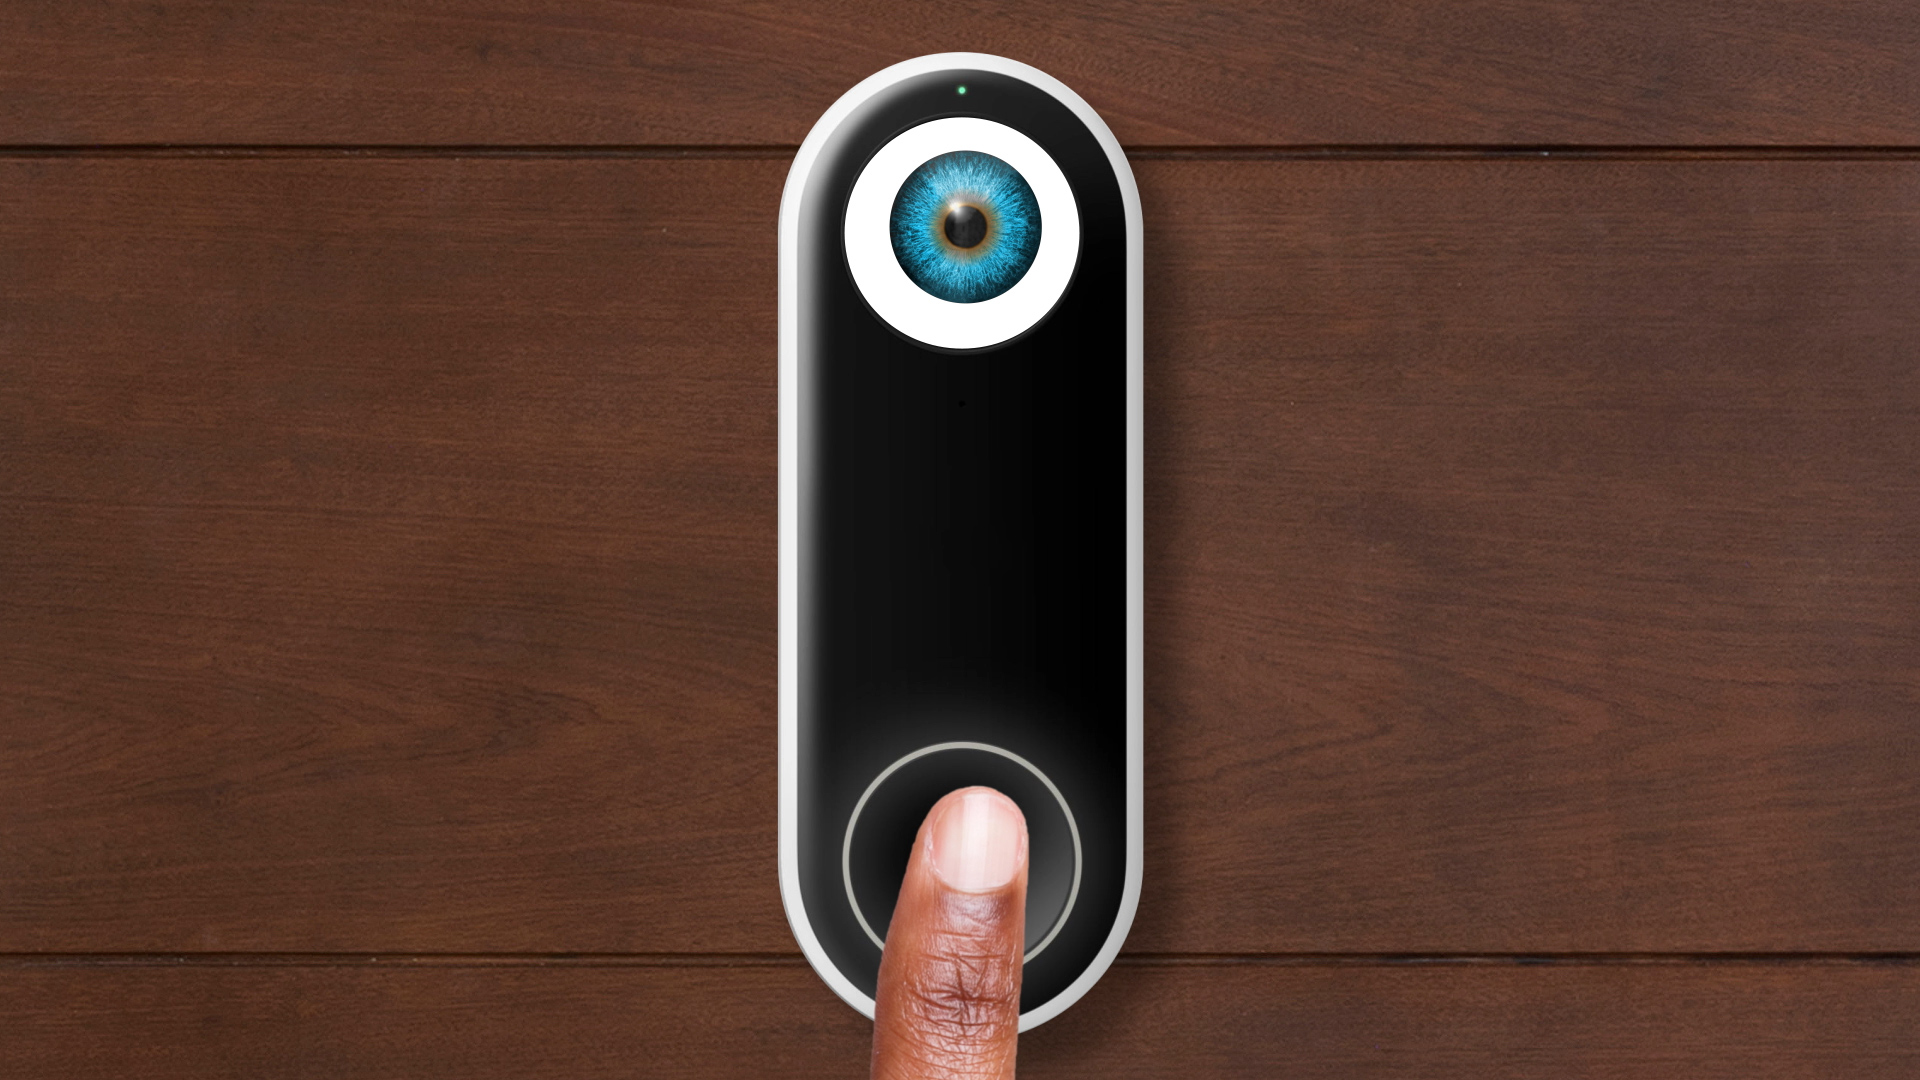 Ring doorbells and Nest security cameras are the next privacy worry